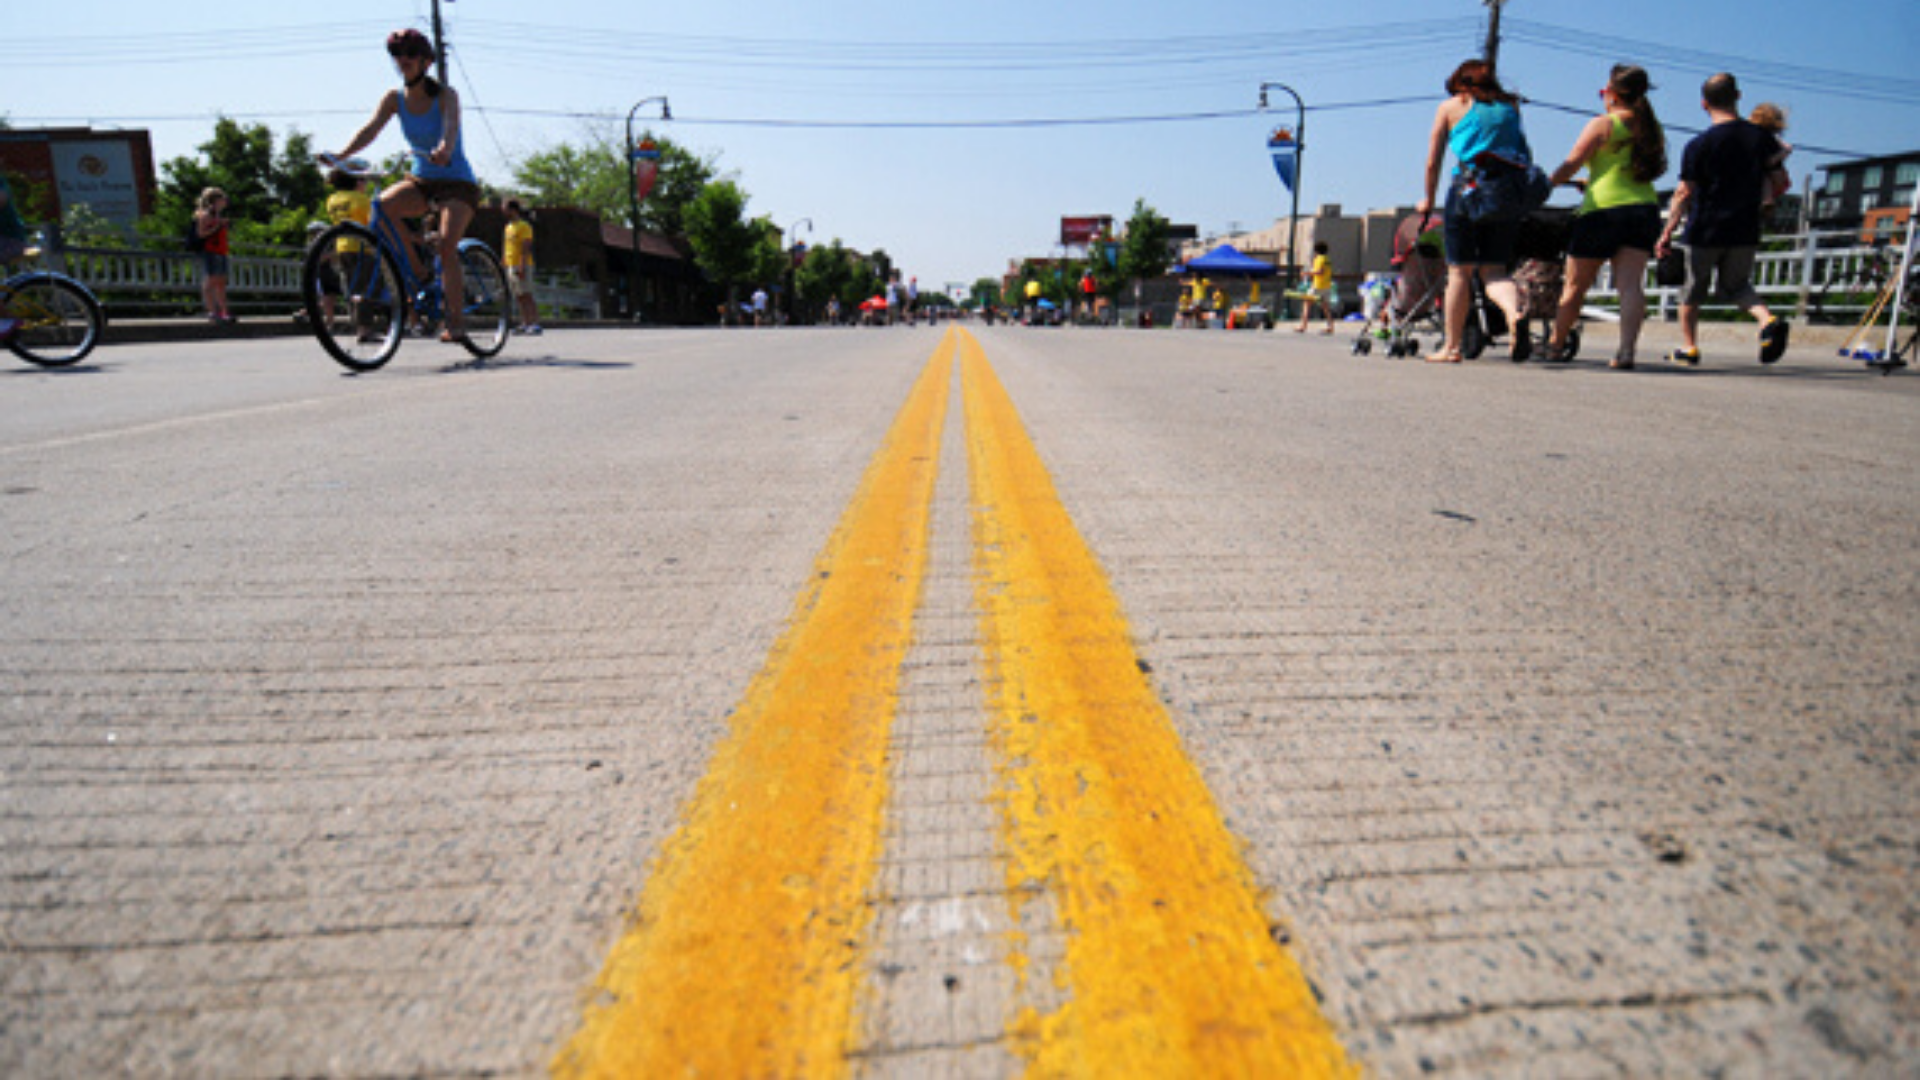 Close up of double yellow center line on open street. People biking & walking in the distance